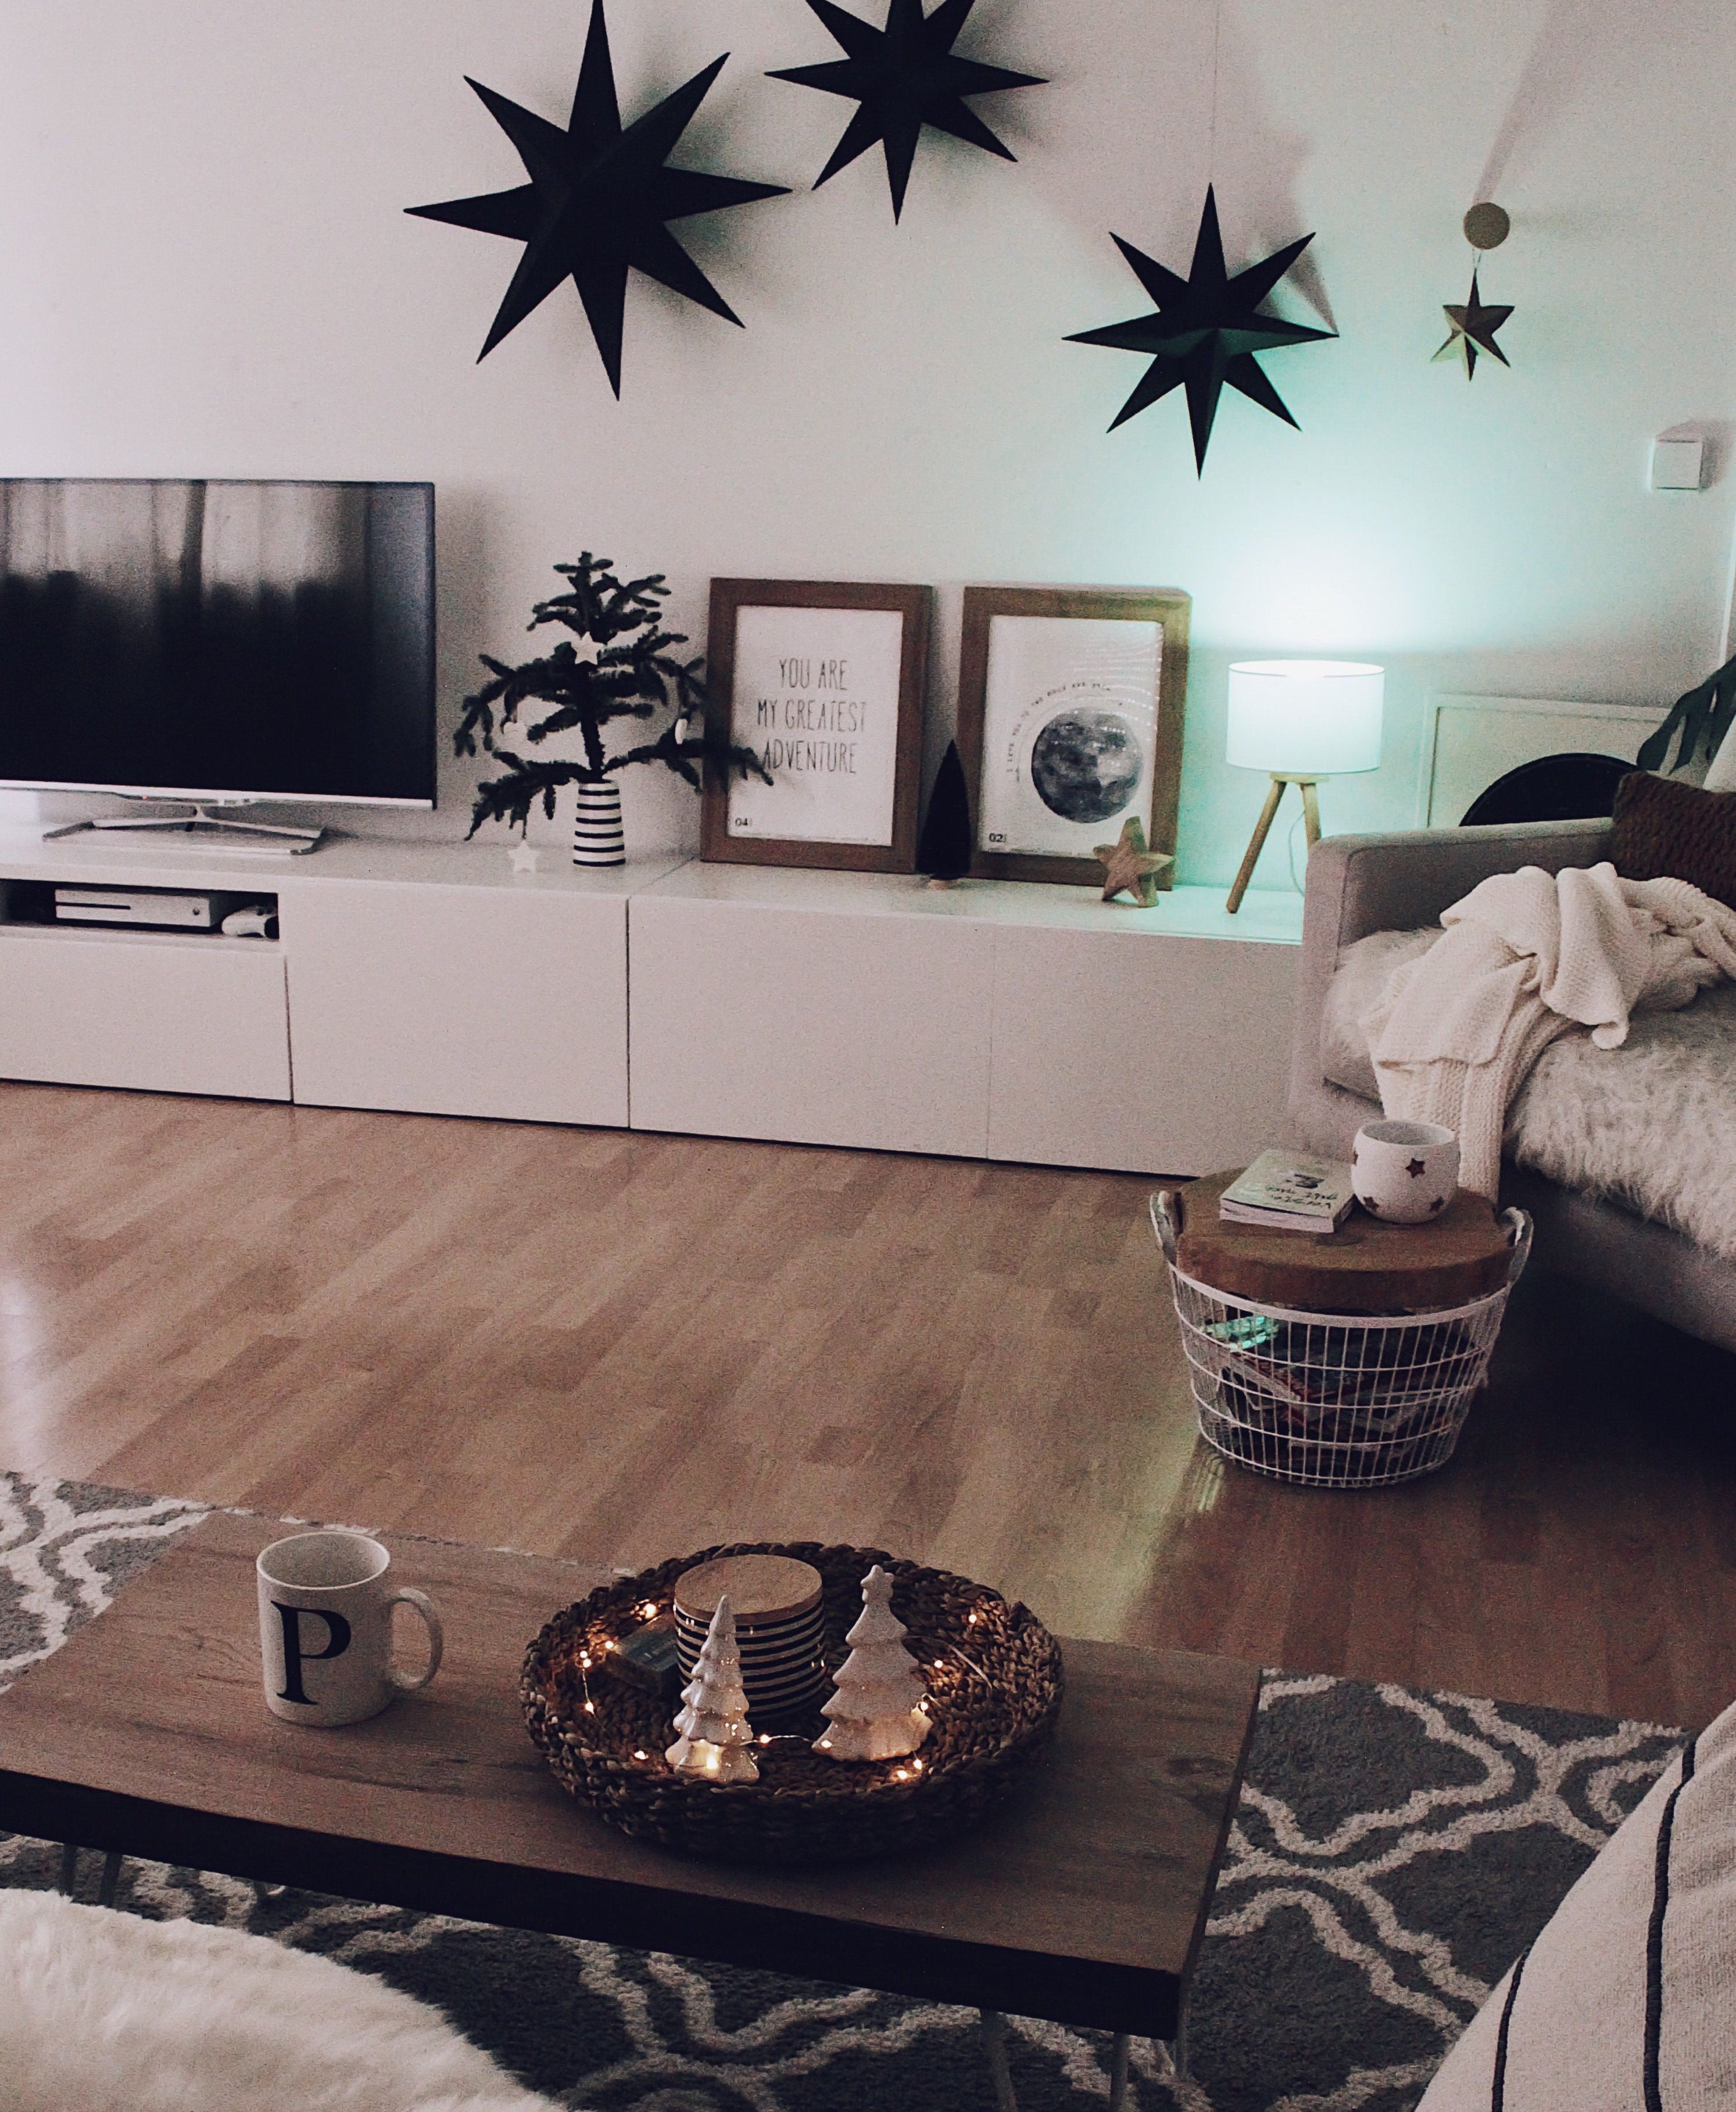 Die Smarte Beleuchtung Mit Philips Hue White And Color Ambiance